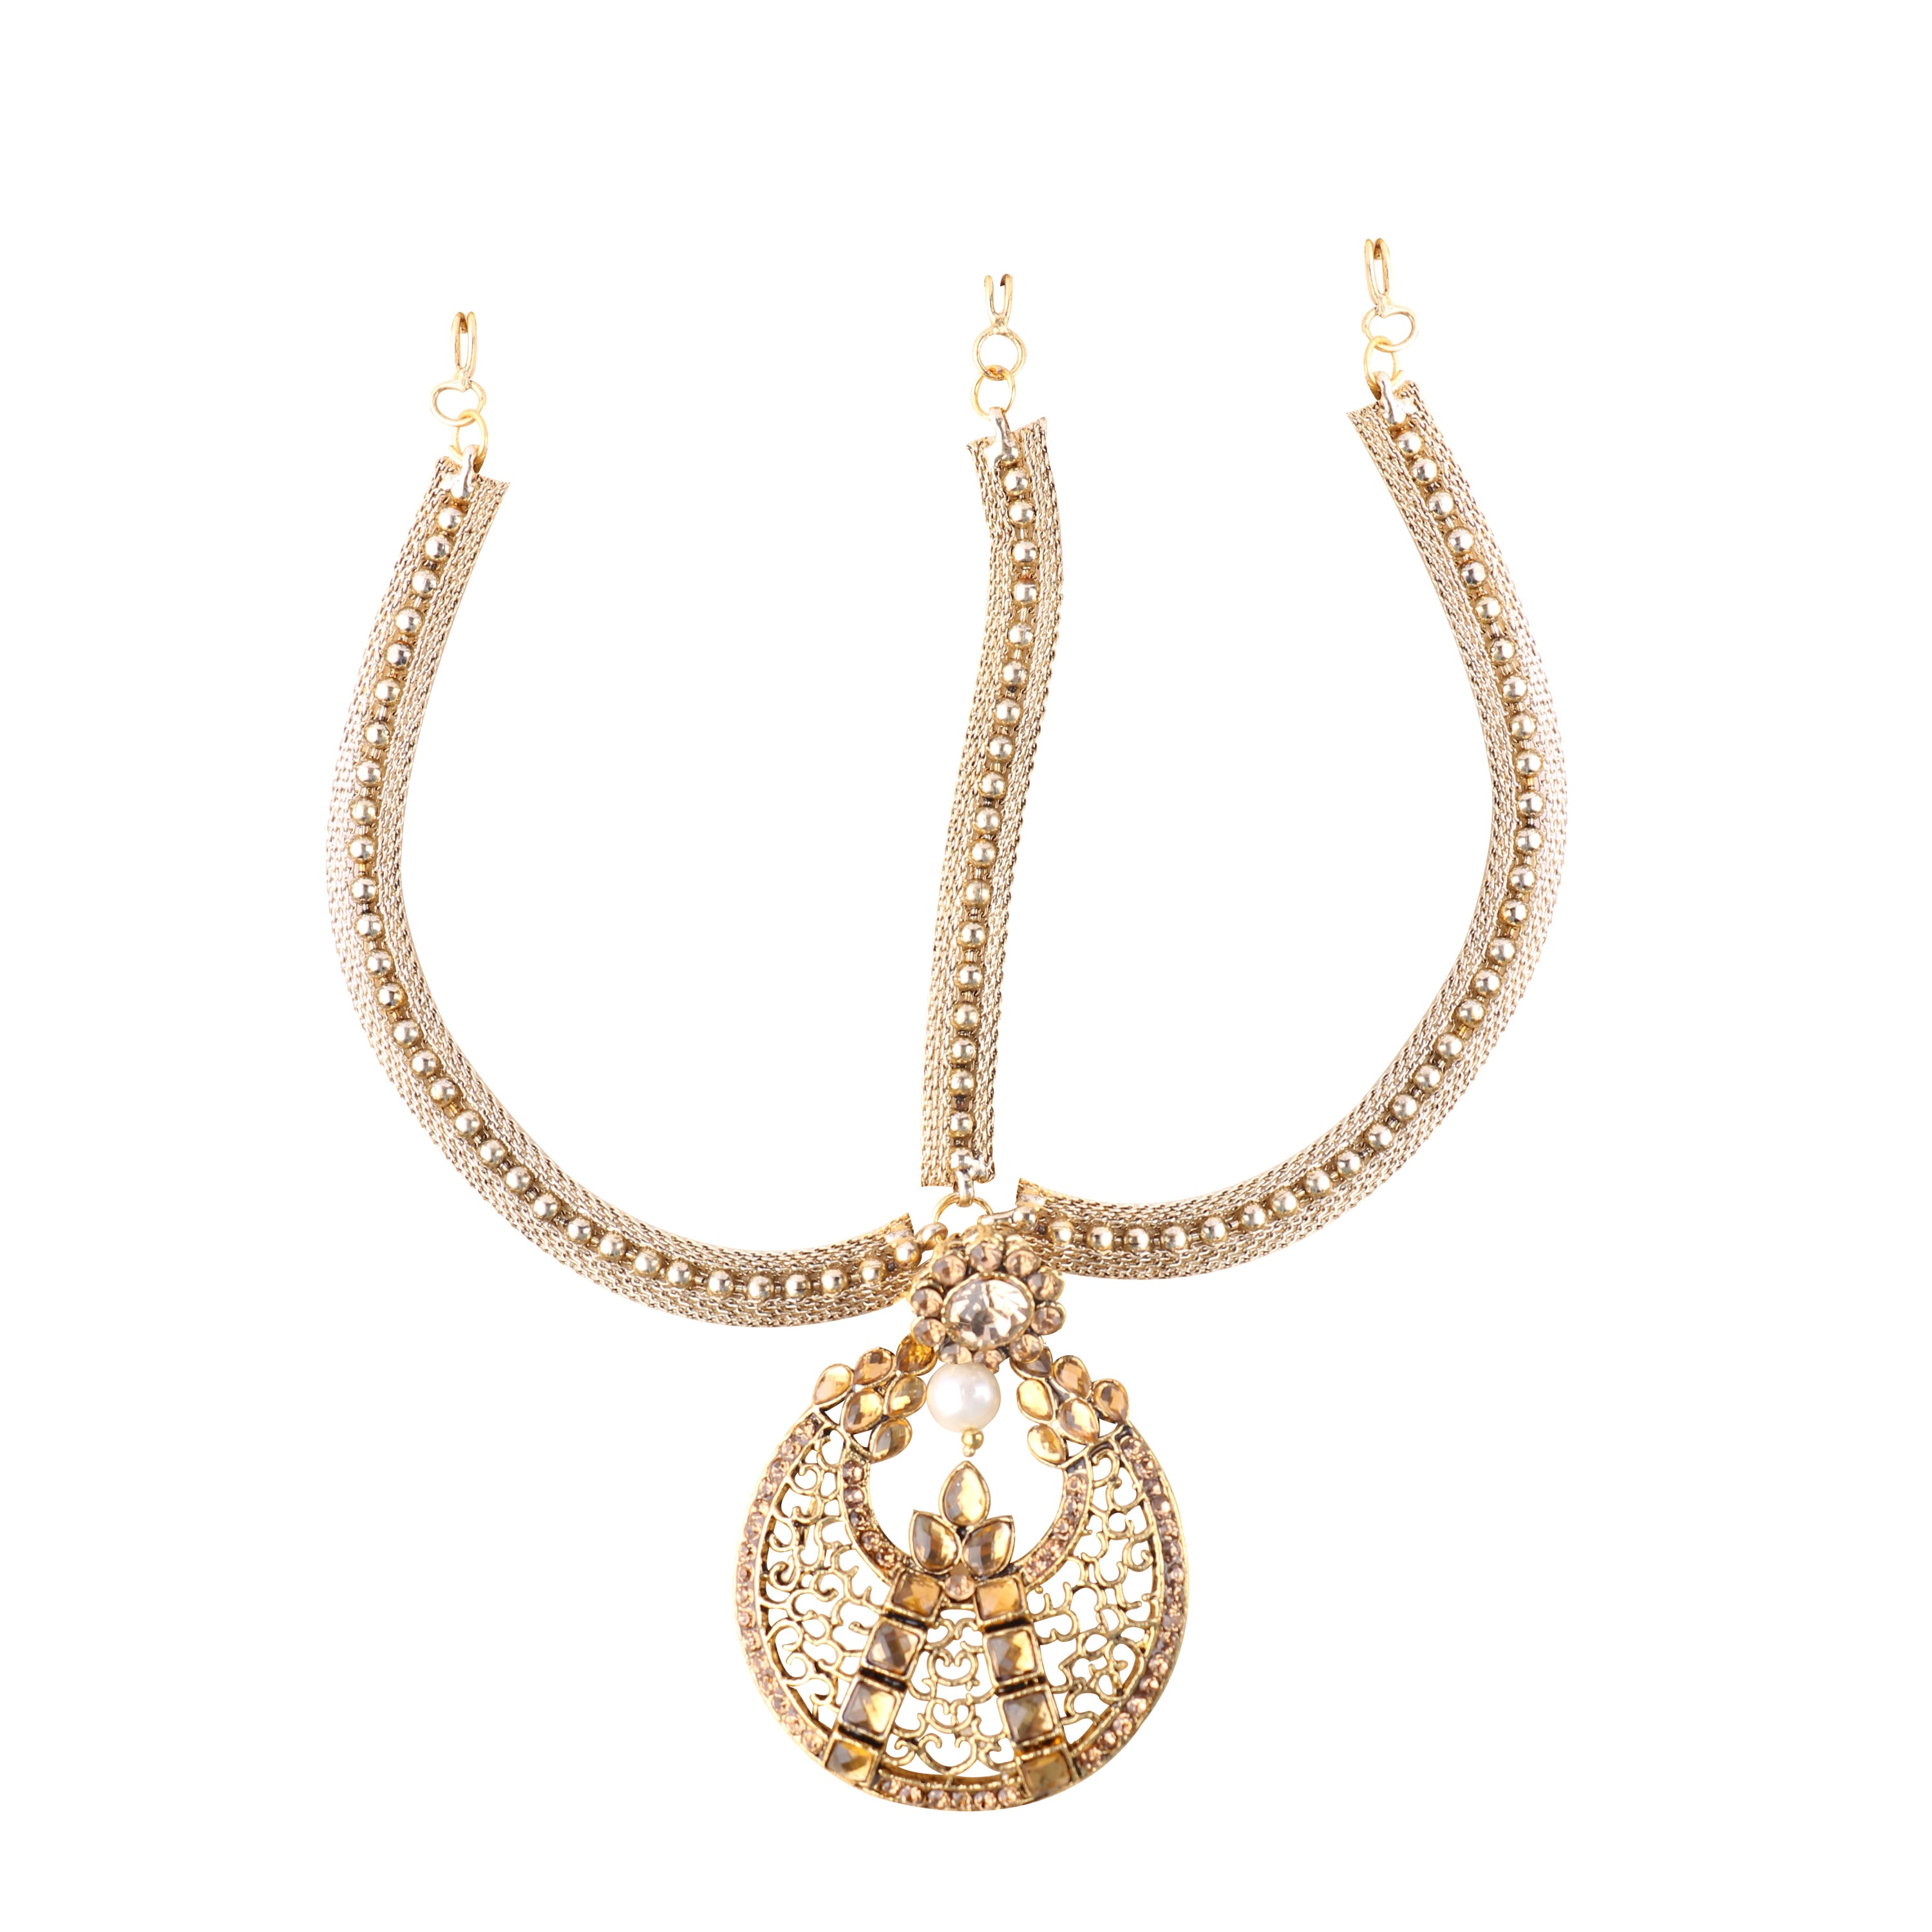 Royal Gold Plated Single Side Strand Floral Pattern Mangtika with Golden Pearls and Stones